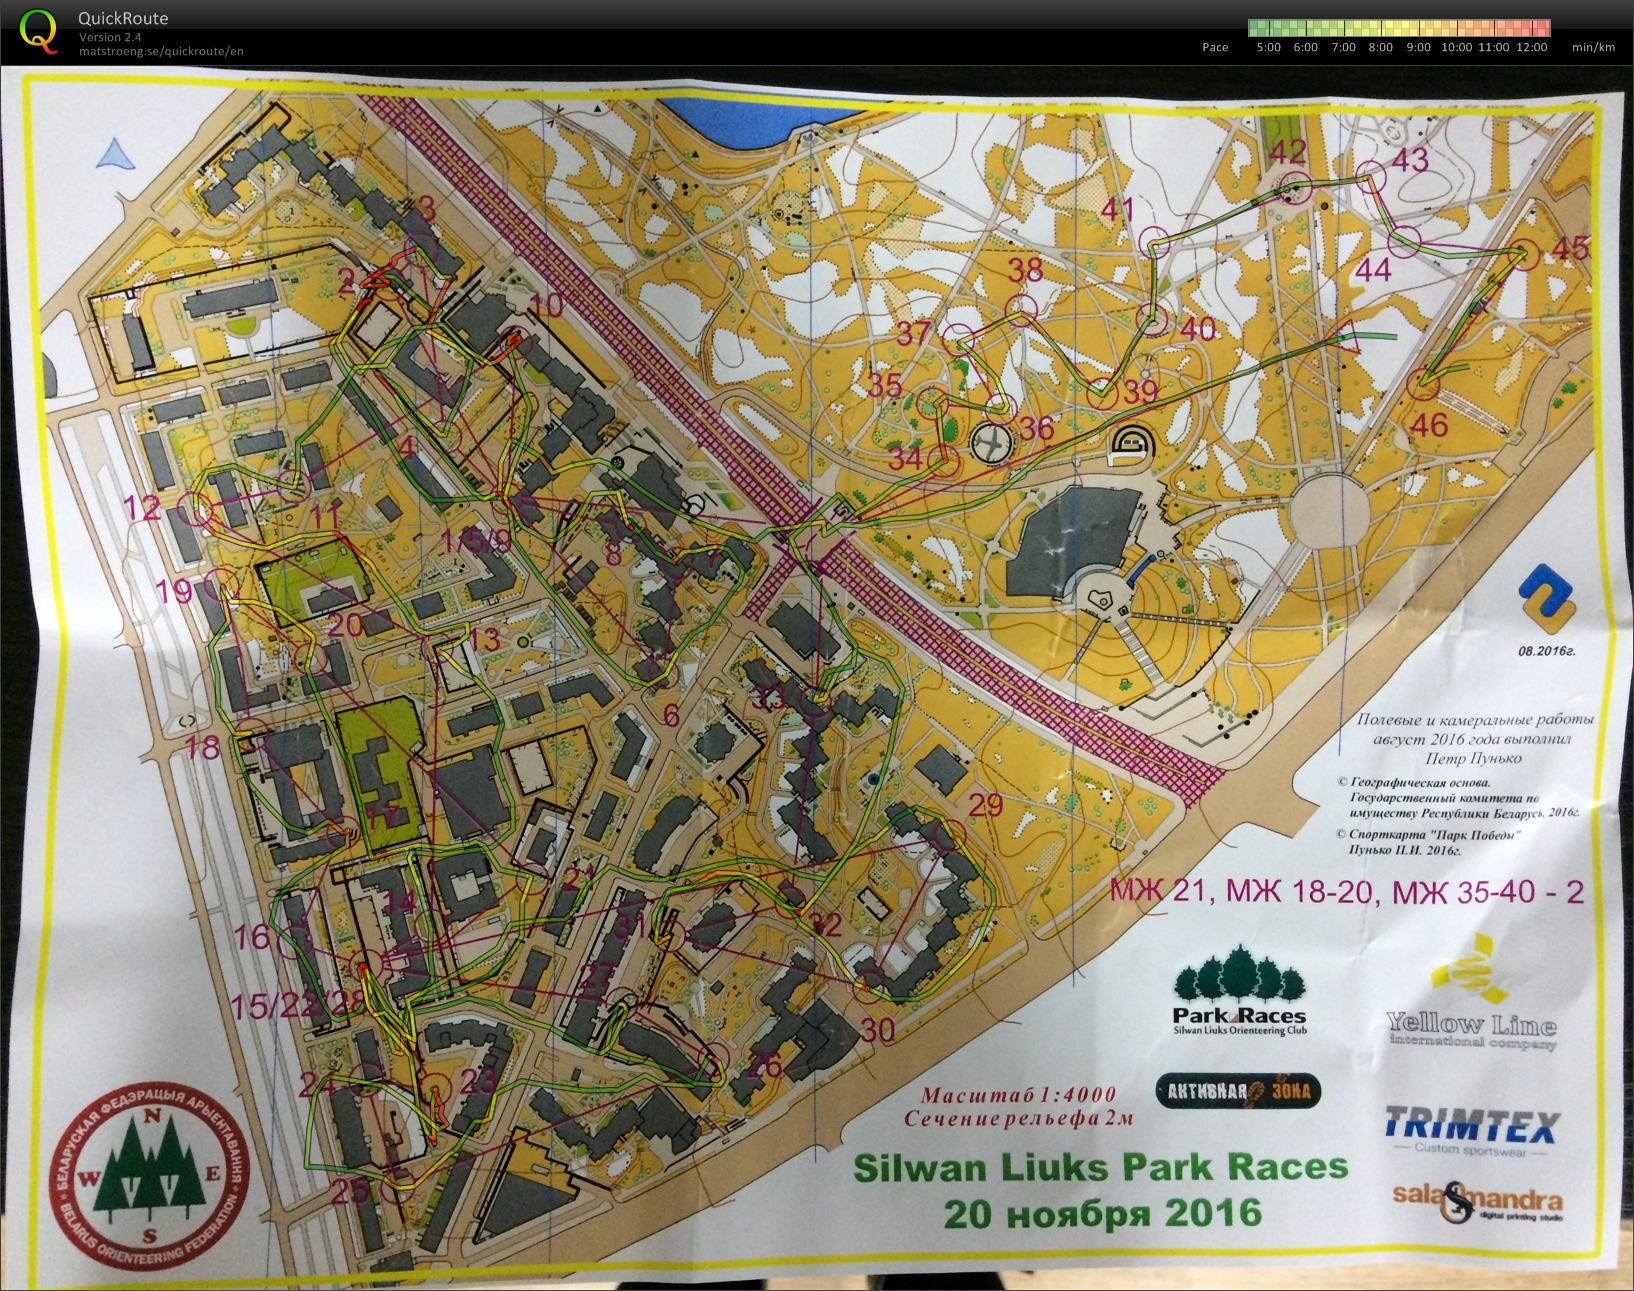 One Man Relay Silwan Liuks Park Races (2016-11-20)